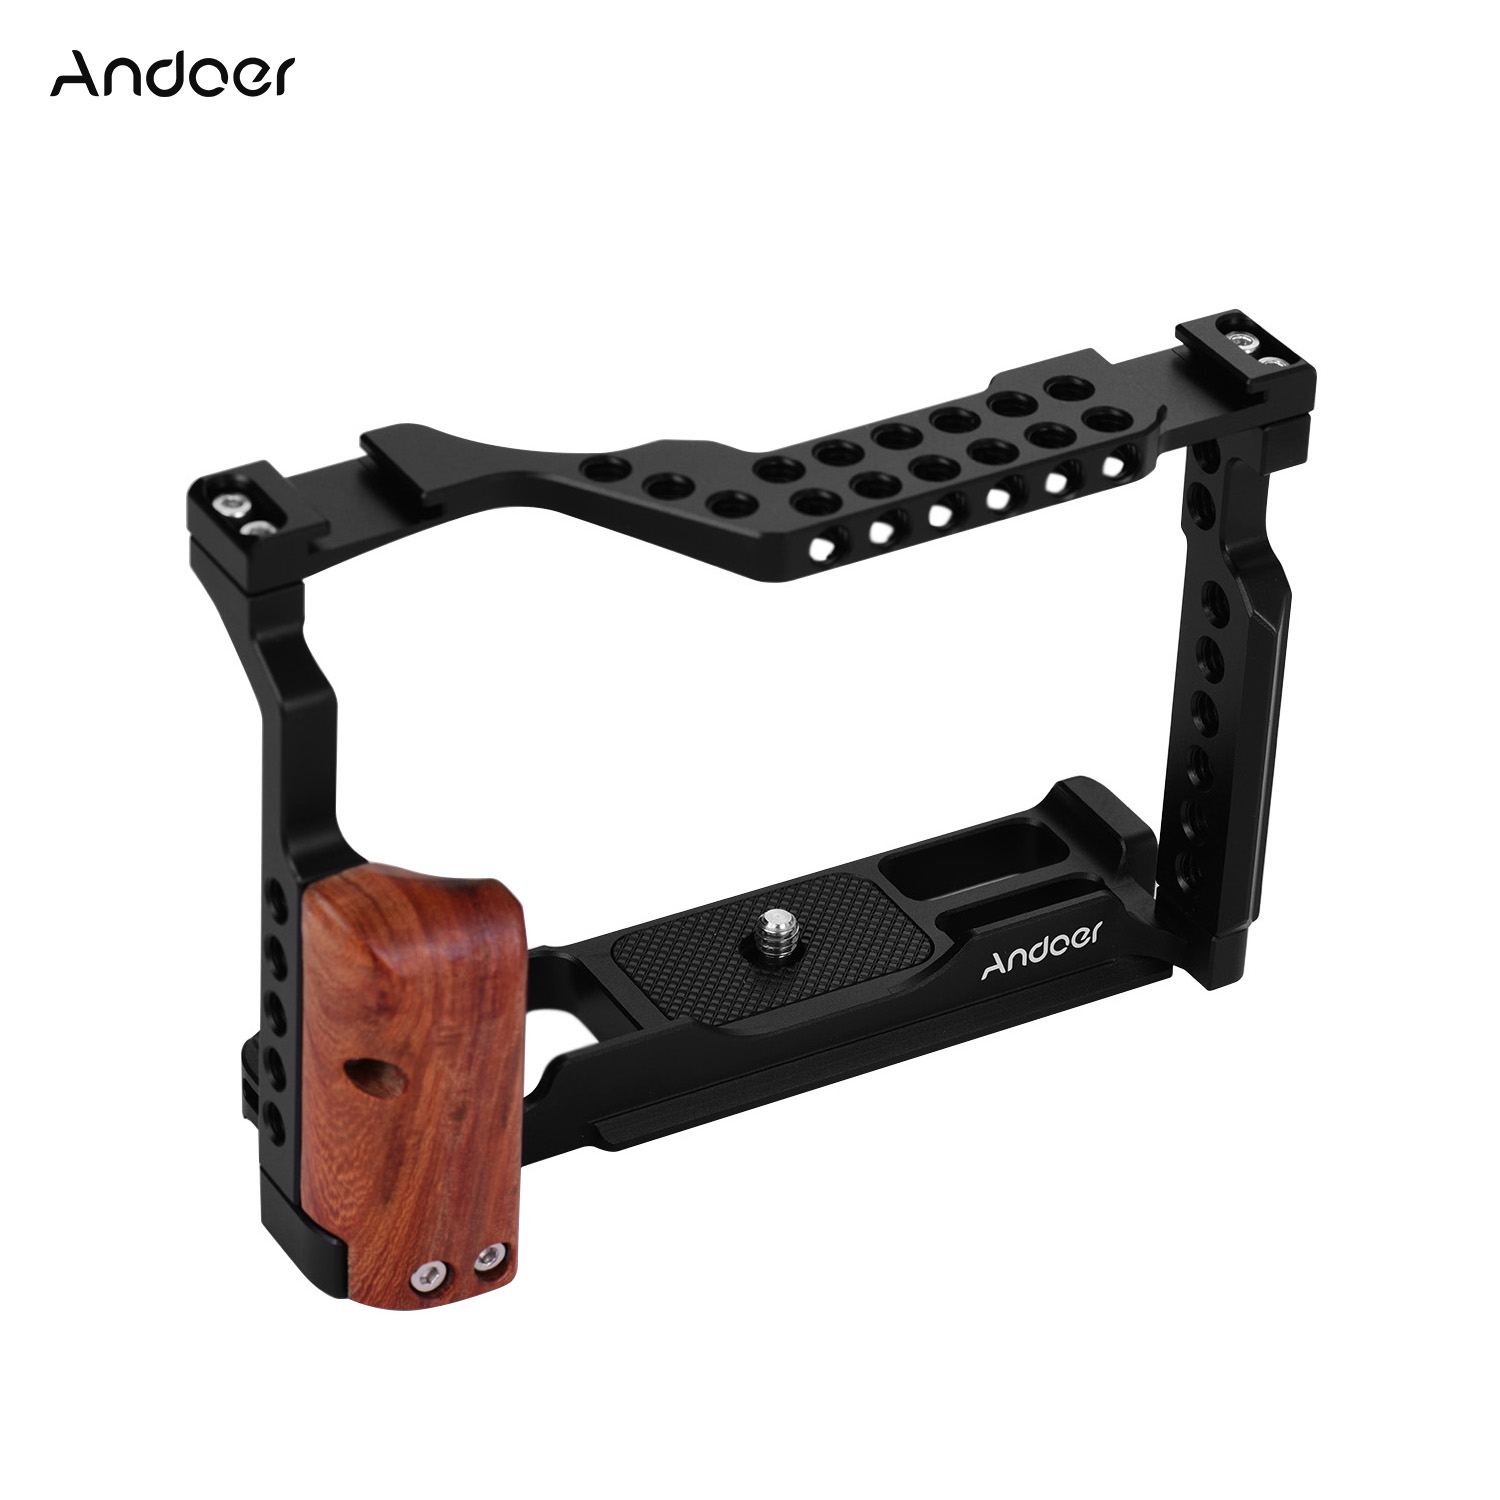 Andoer Camera Cage Aluminum Alloy Photography Video Camera Cage With Dual Cold Shoe Mount Compatible With Fujifilm X-T3/X-T2